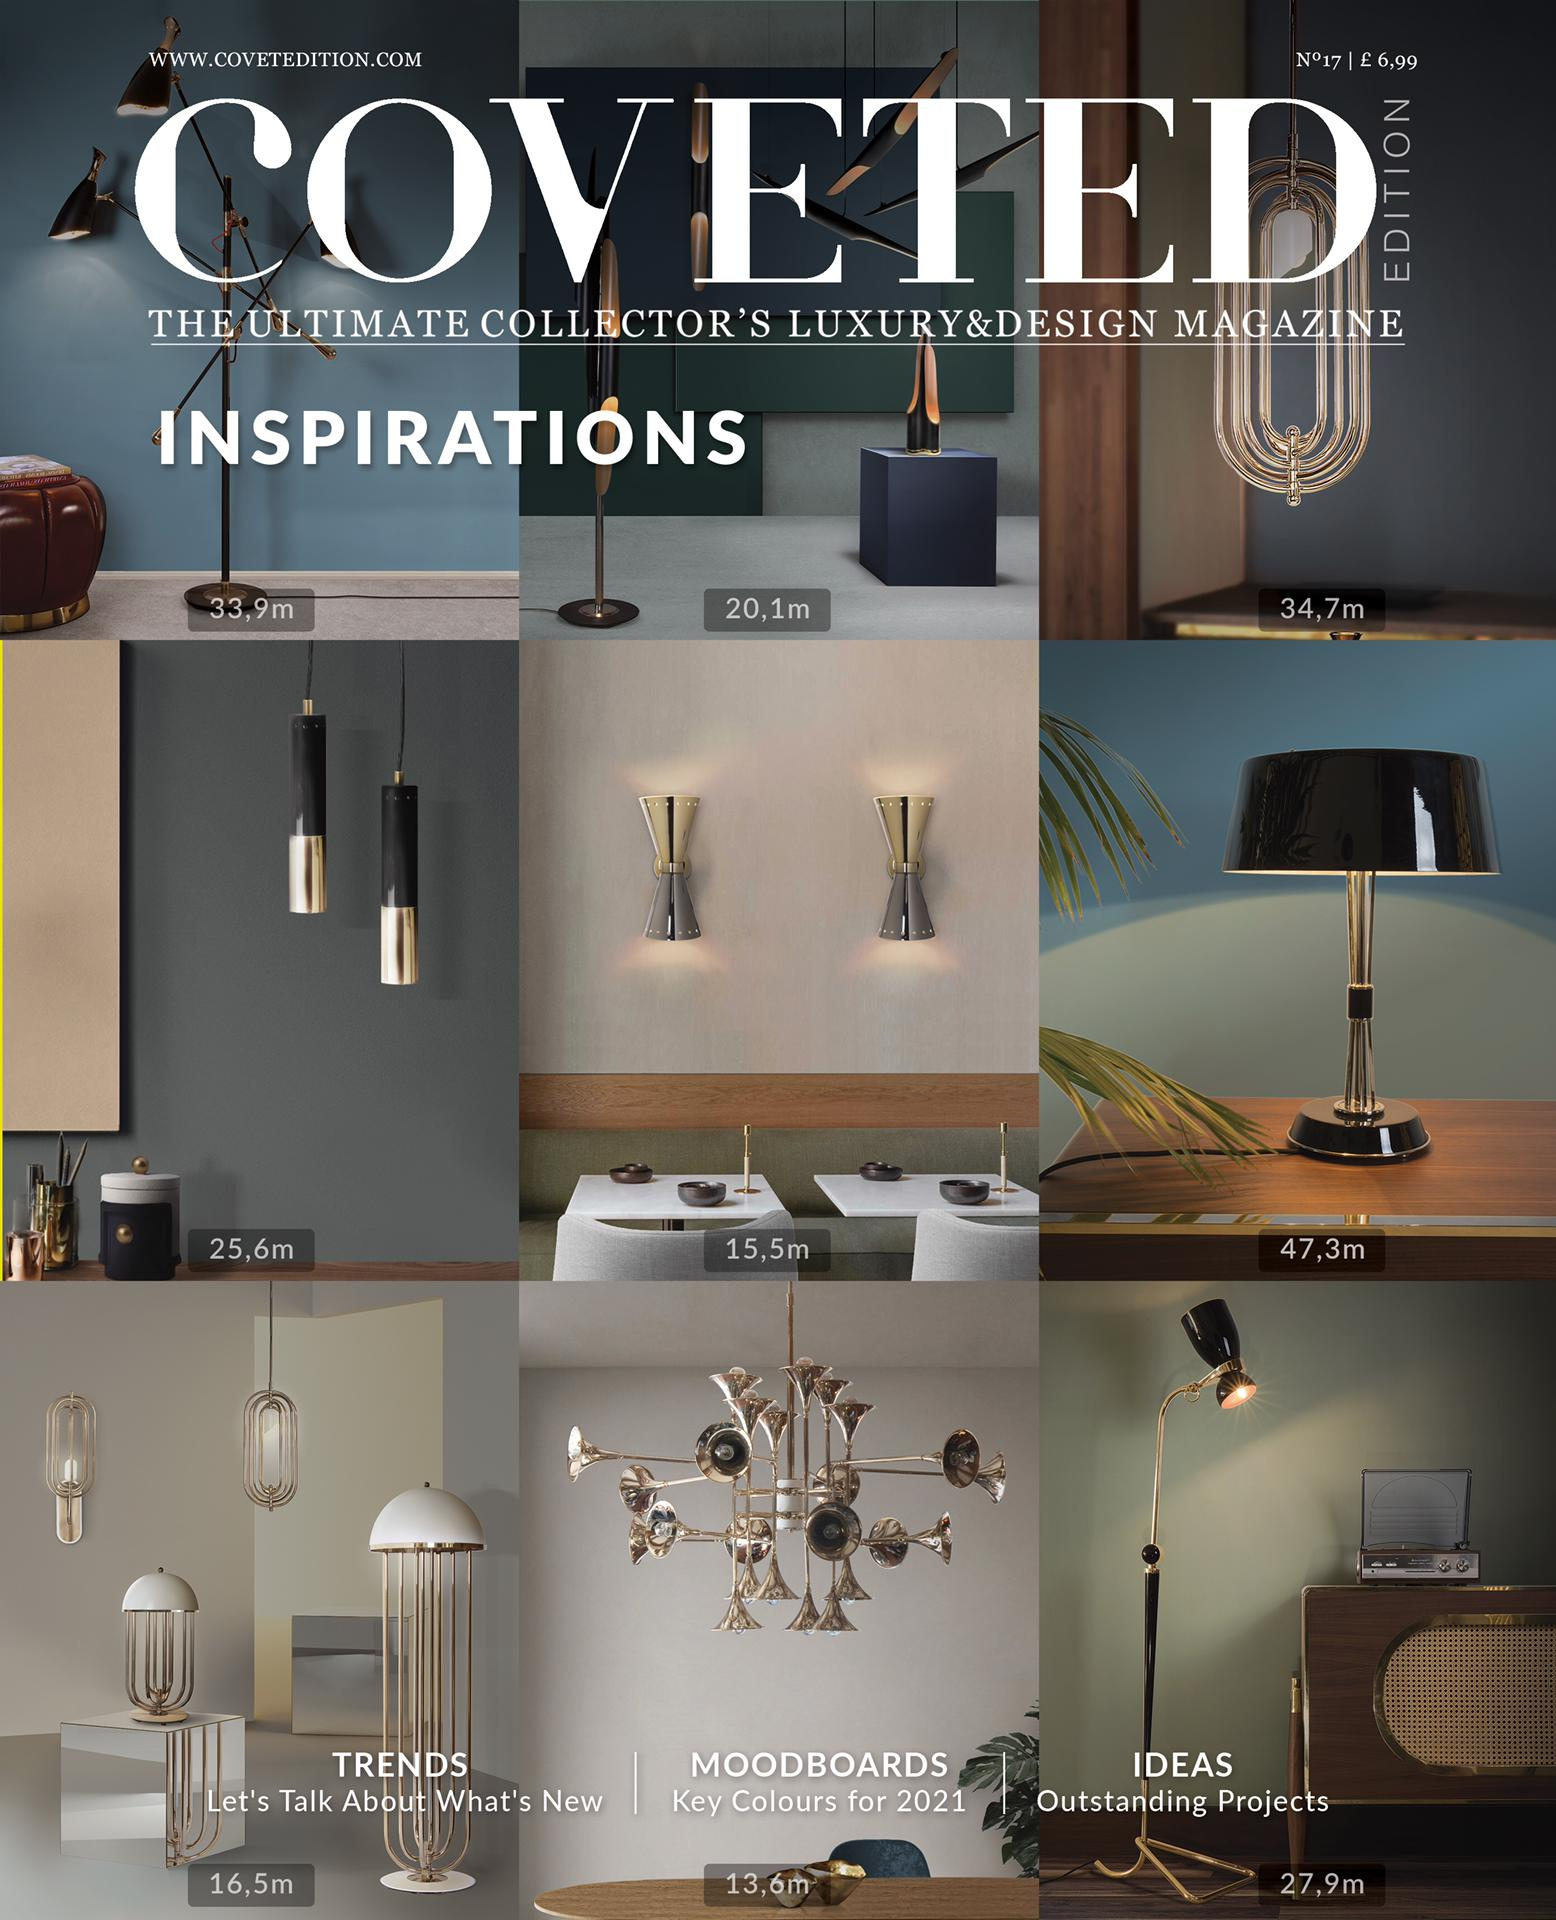 Top Search: We'll Unveil Some of The Best Luxury Design Topics of This New CovetED Magazine! Check out! luxury design Top Search: We'll Unveil Some of The Best Luxury Design Topics of This New CovetED Magazine! Check out! 1